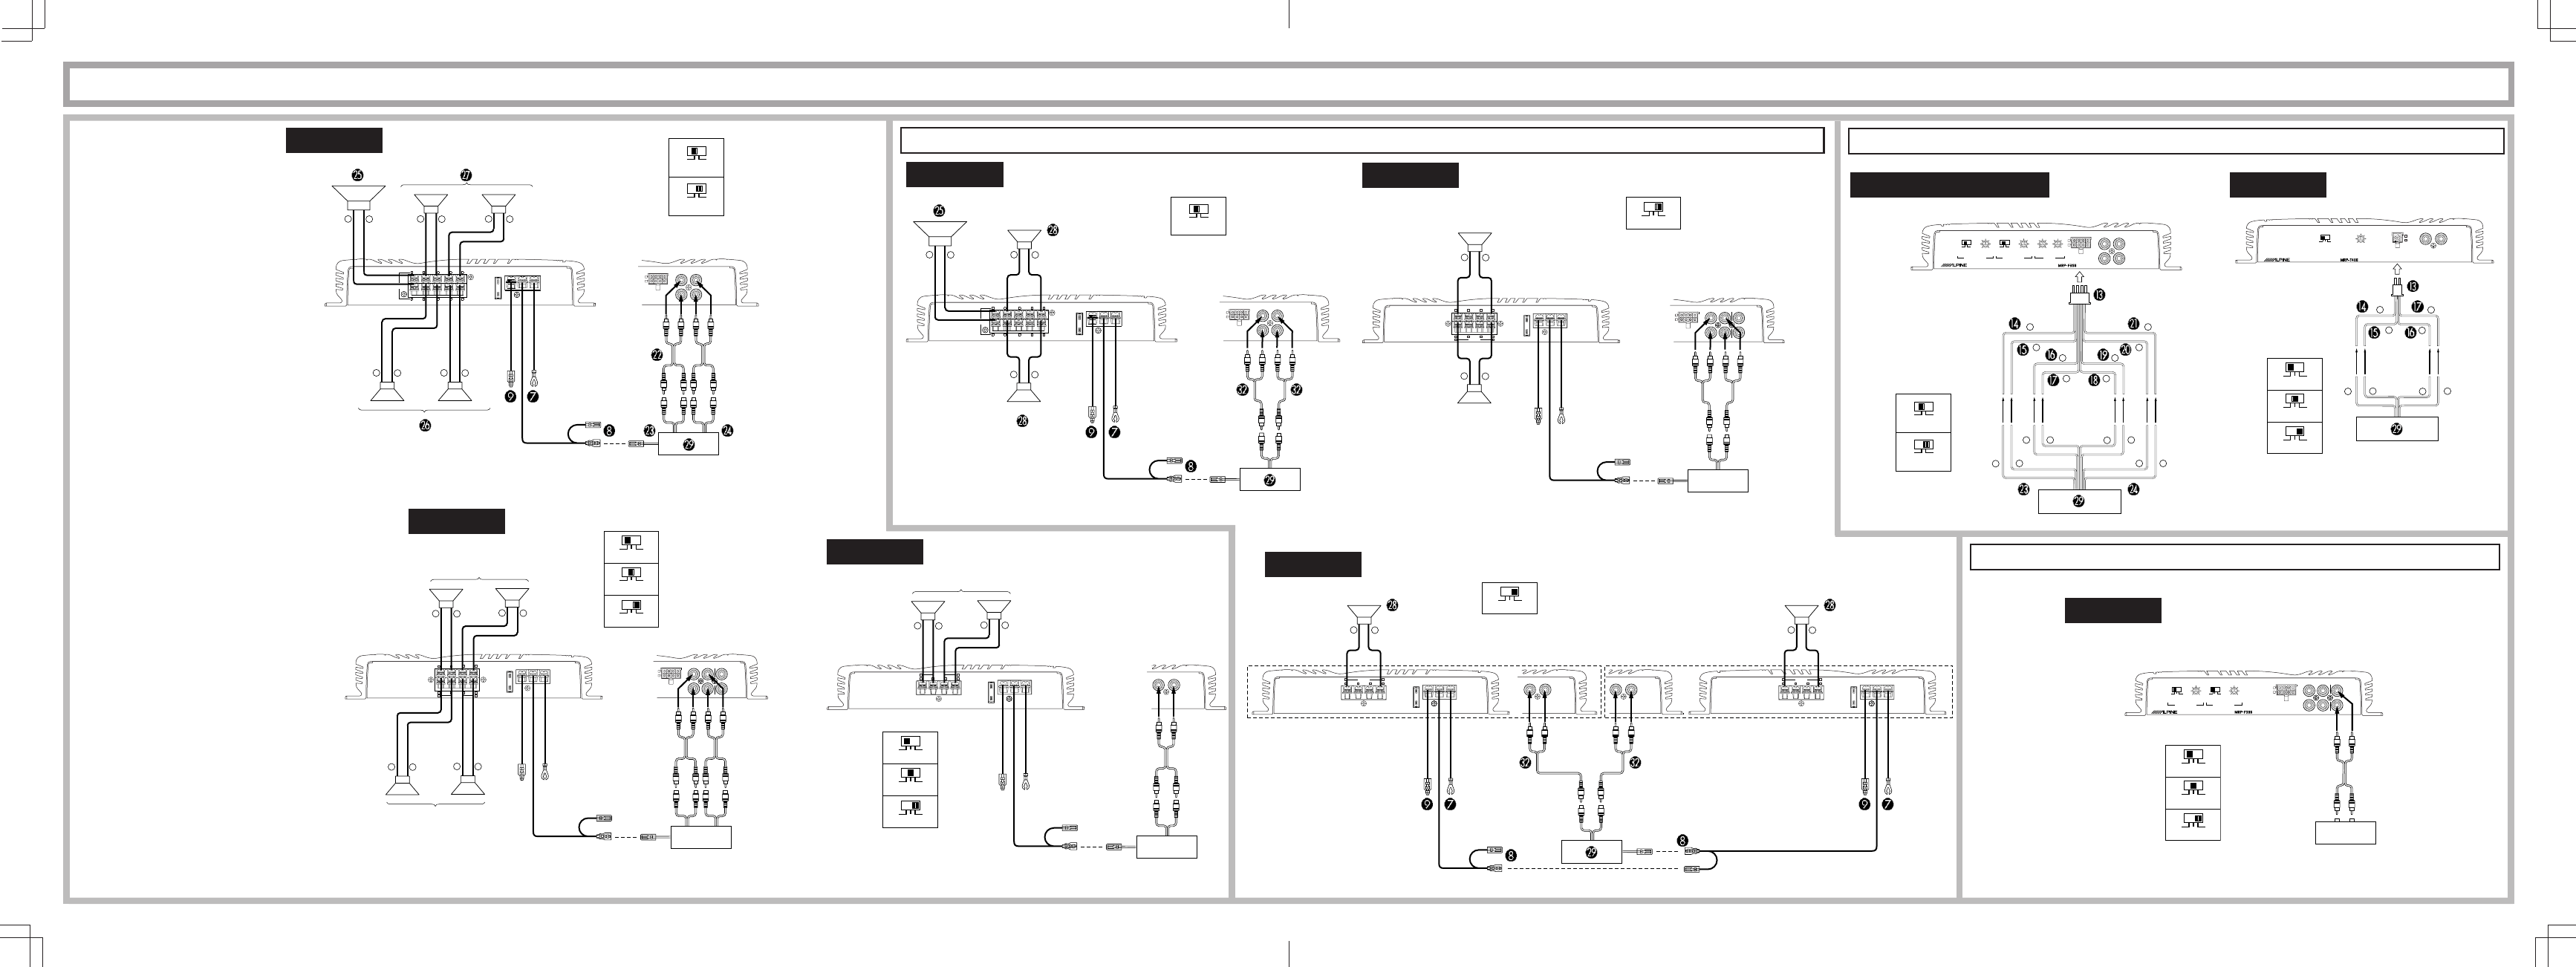 Page 4 of Alpine Stereo Amplifier MRP-F356 User Guide